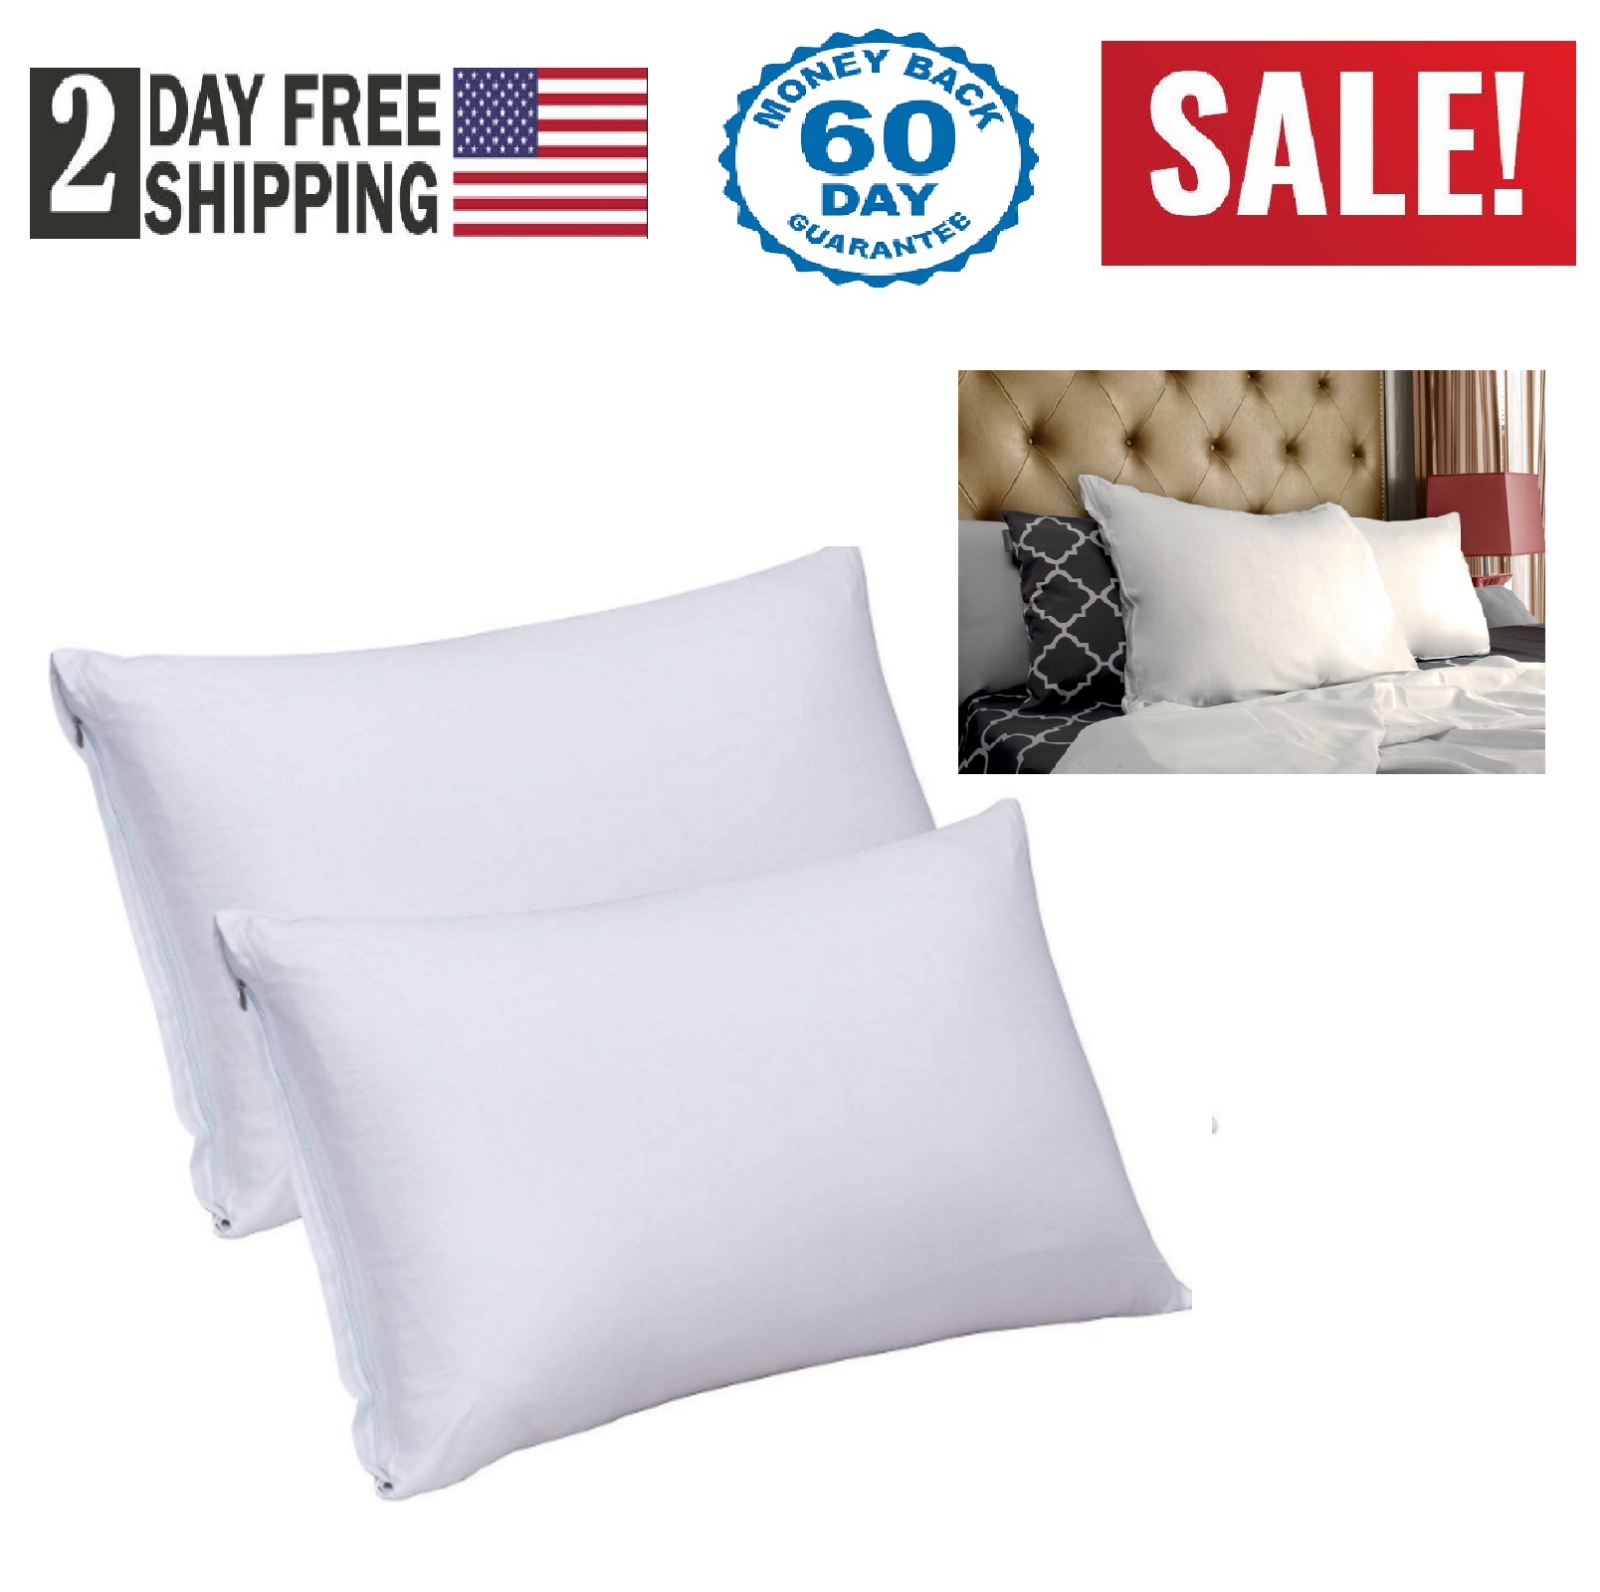 2 Pack White King Size Cotton Pillow Case with Zipper Elegan